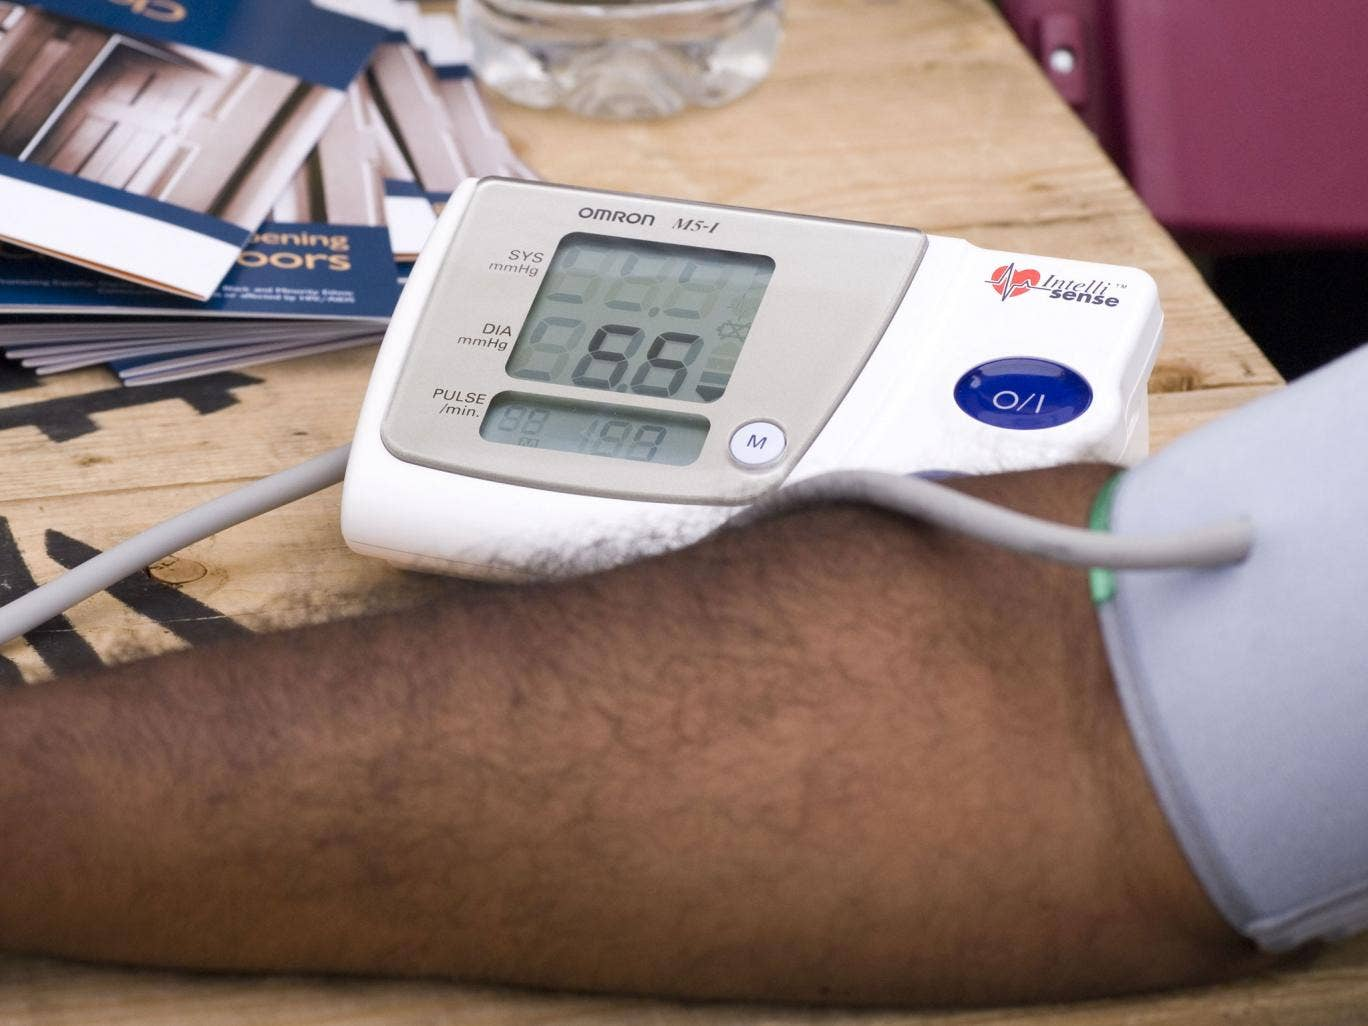 Checks, including blood pressure, can save 650 lives a year